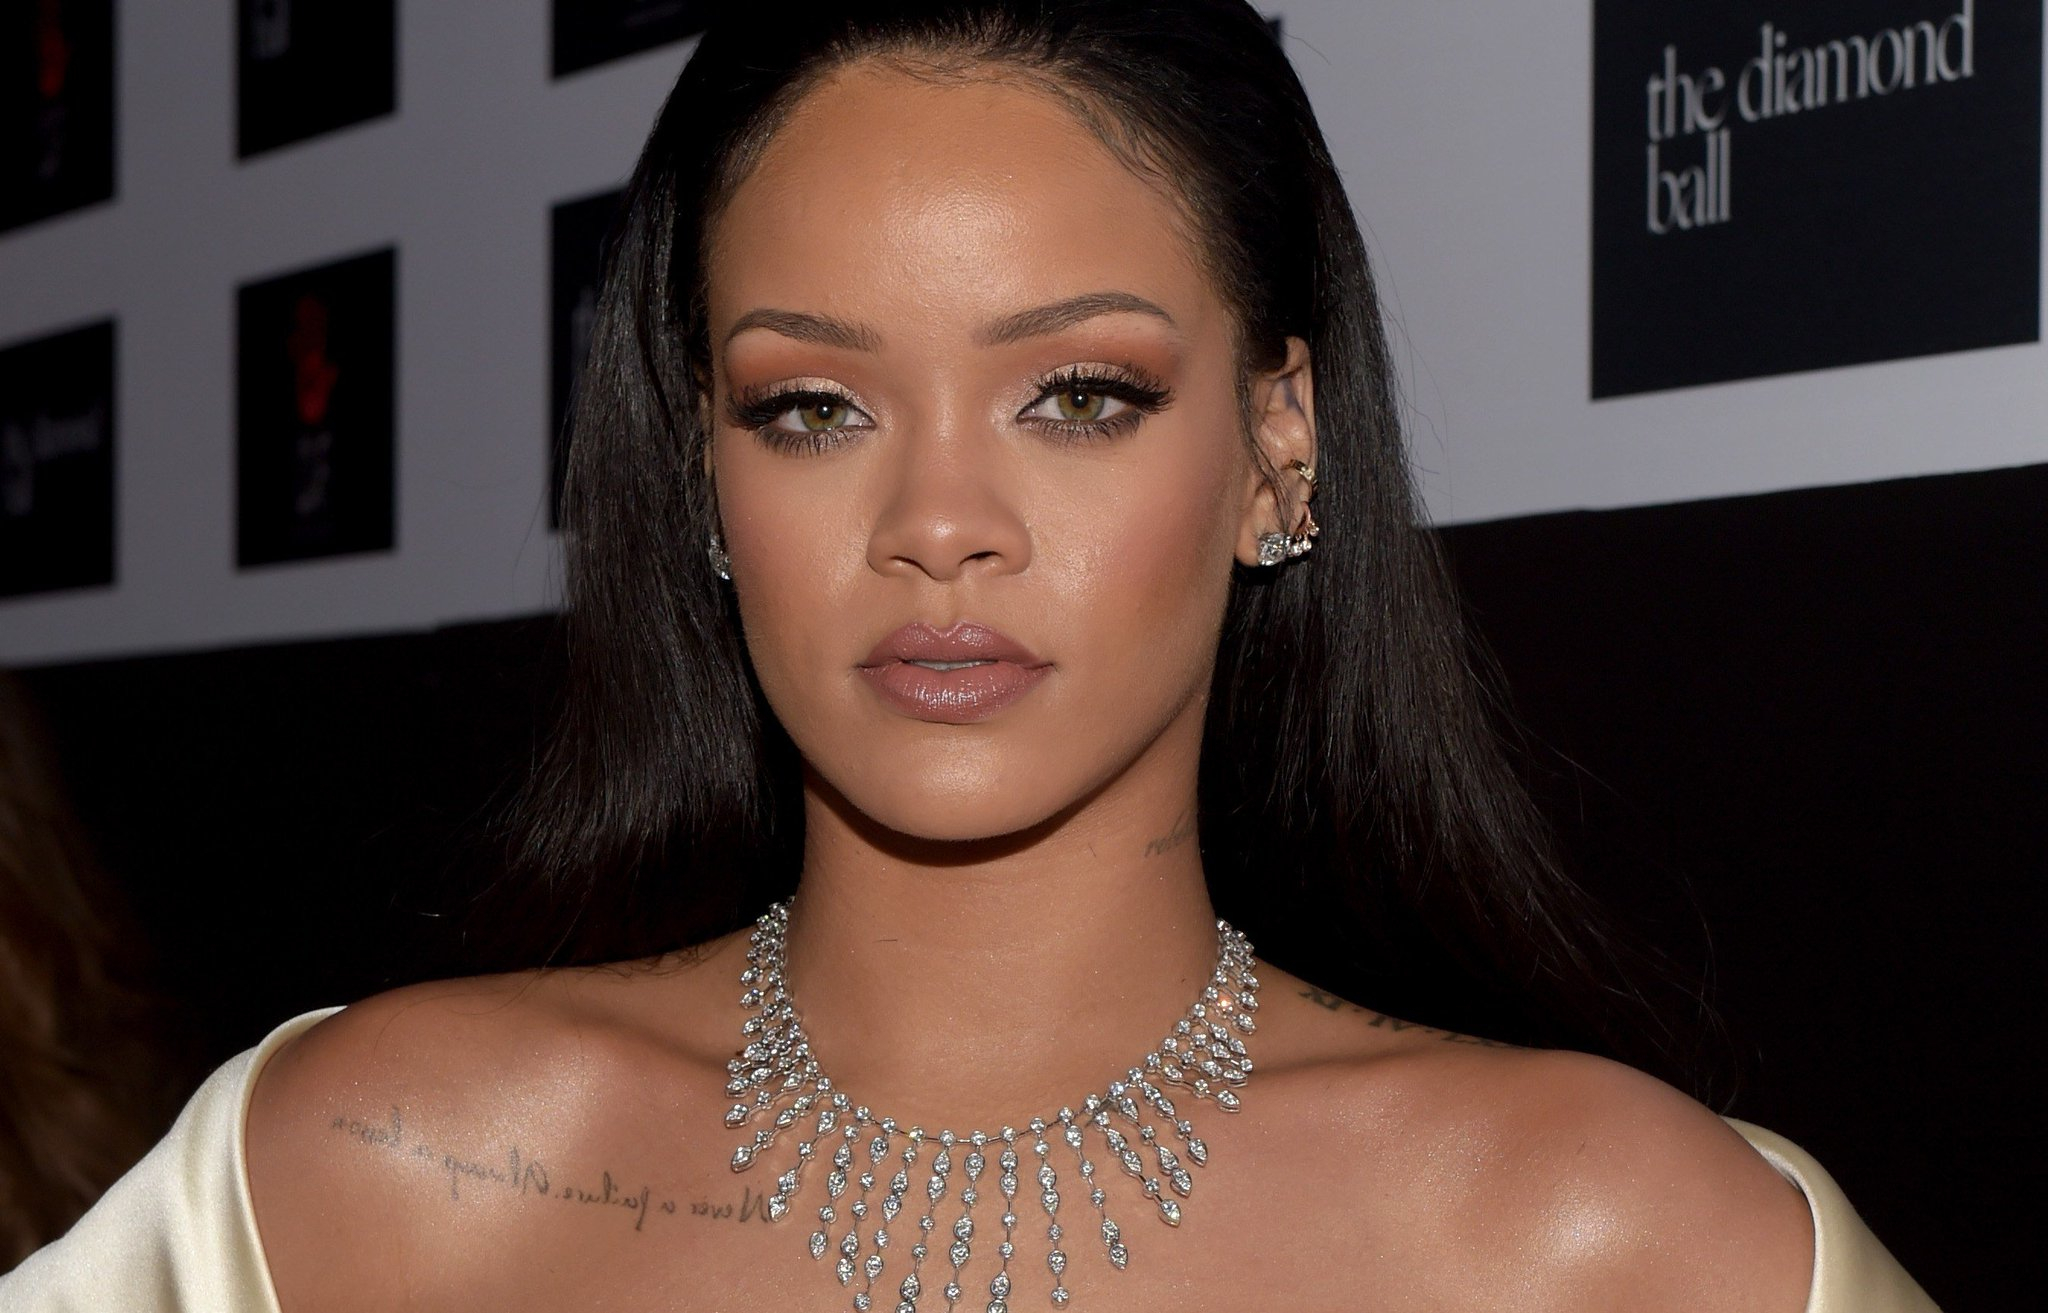 Rihanna just wore a pink bra as a shirt—and it obviously looks amazing: https://t.co/znPrsBTalt https://t.co/vYJweRi8cF